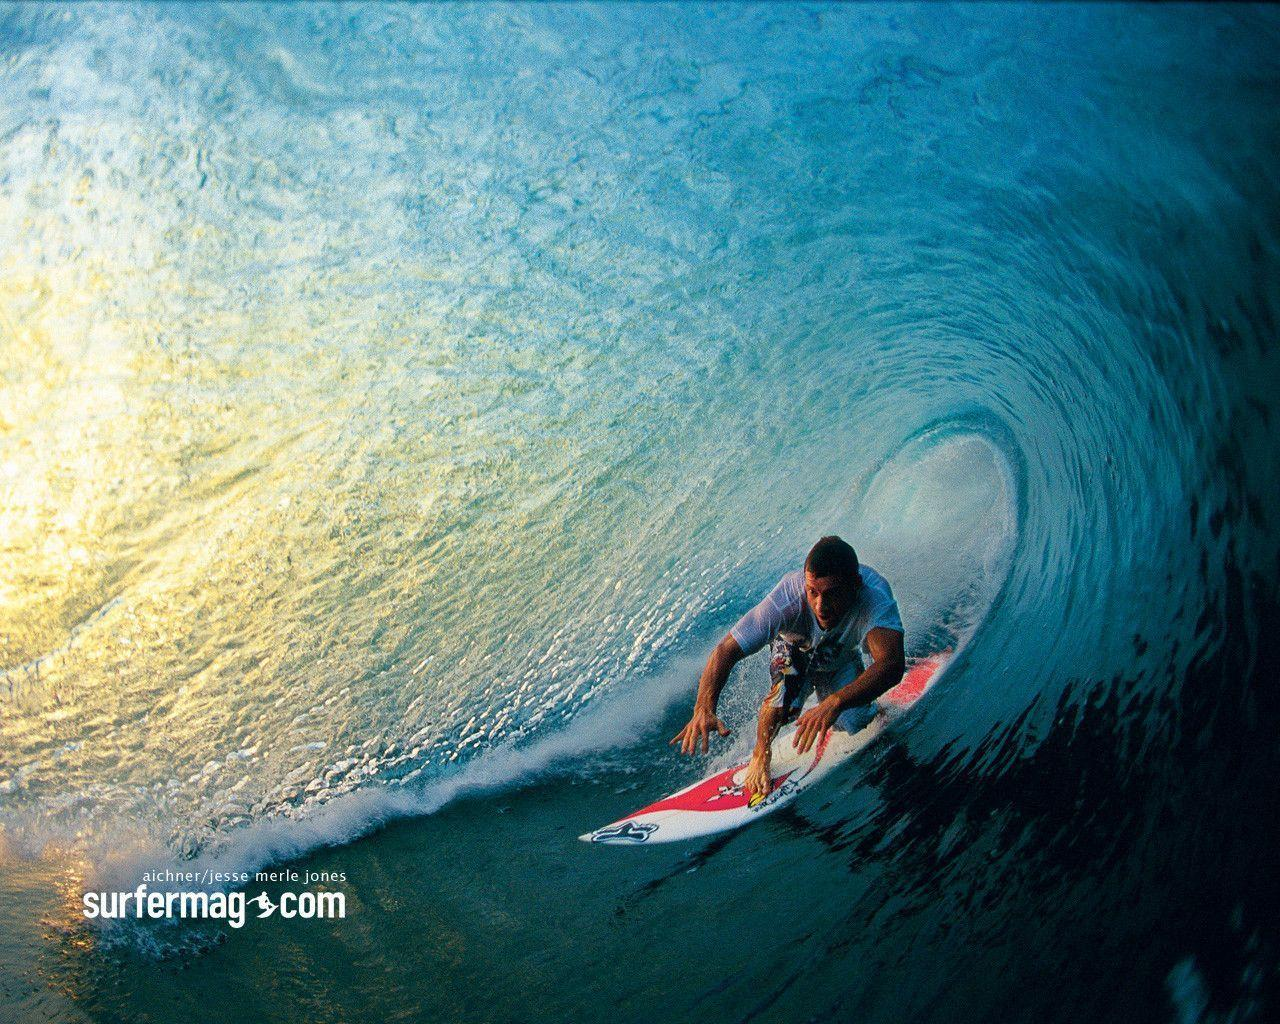 surfing wallpaper full hd - photo #41